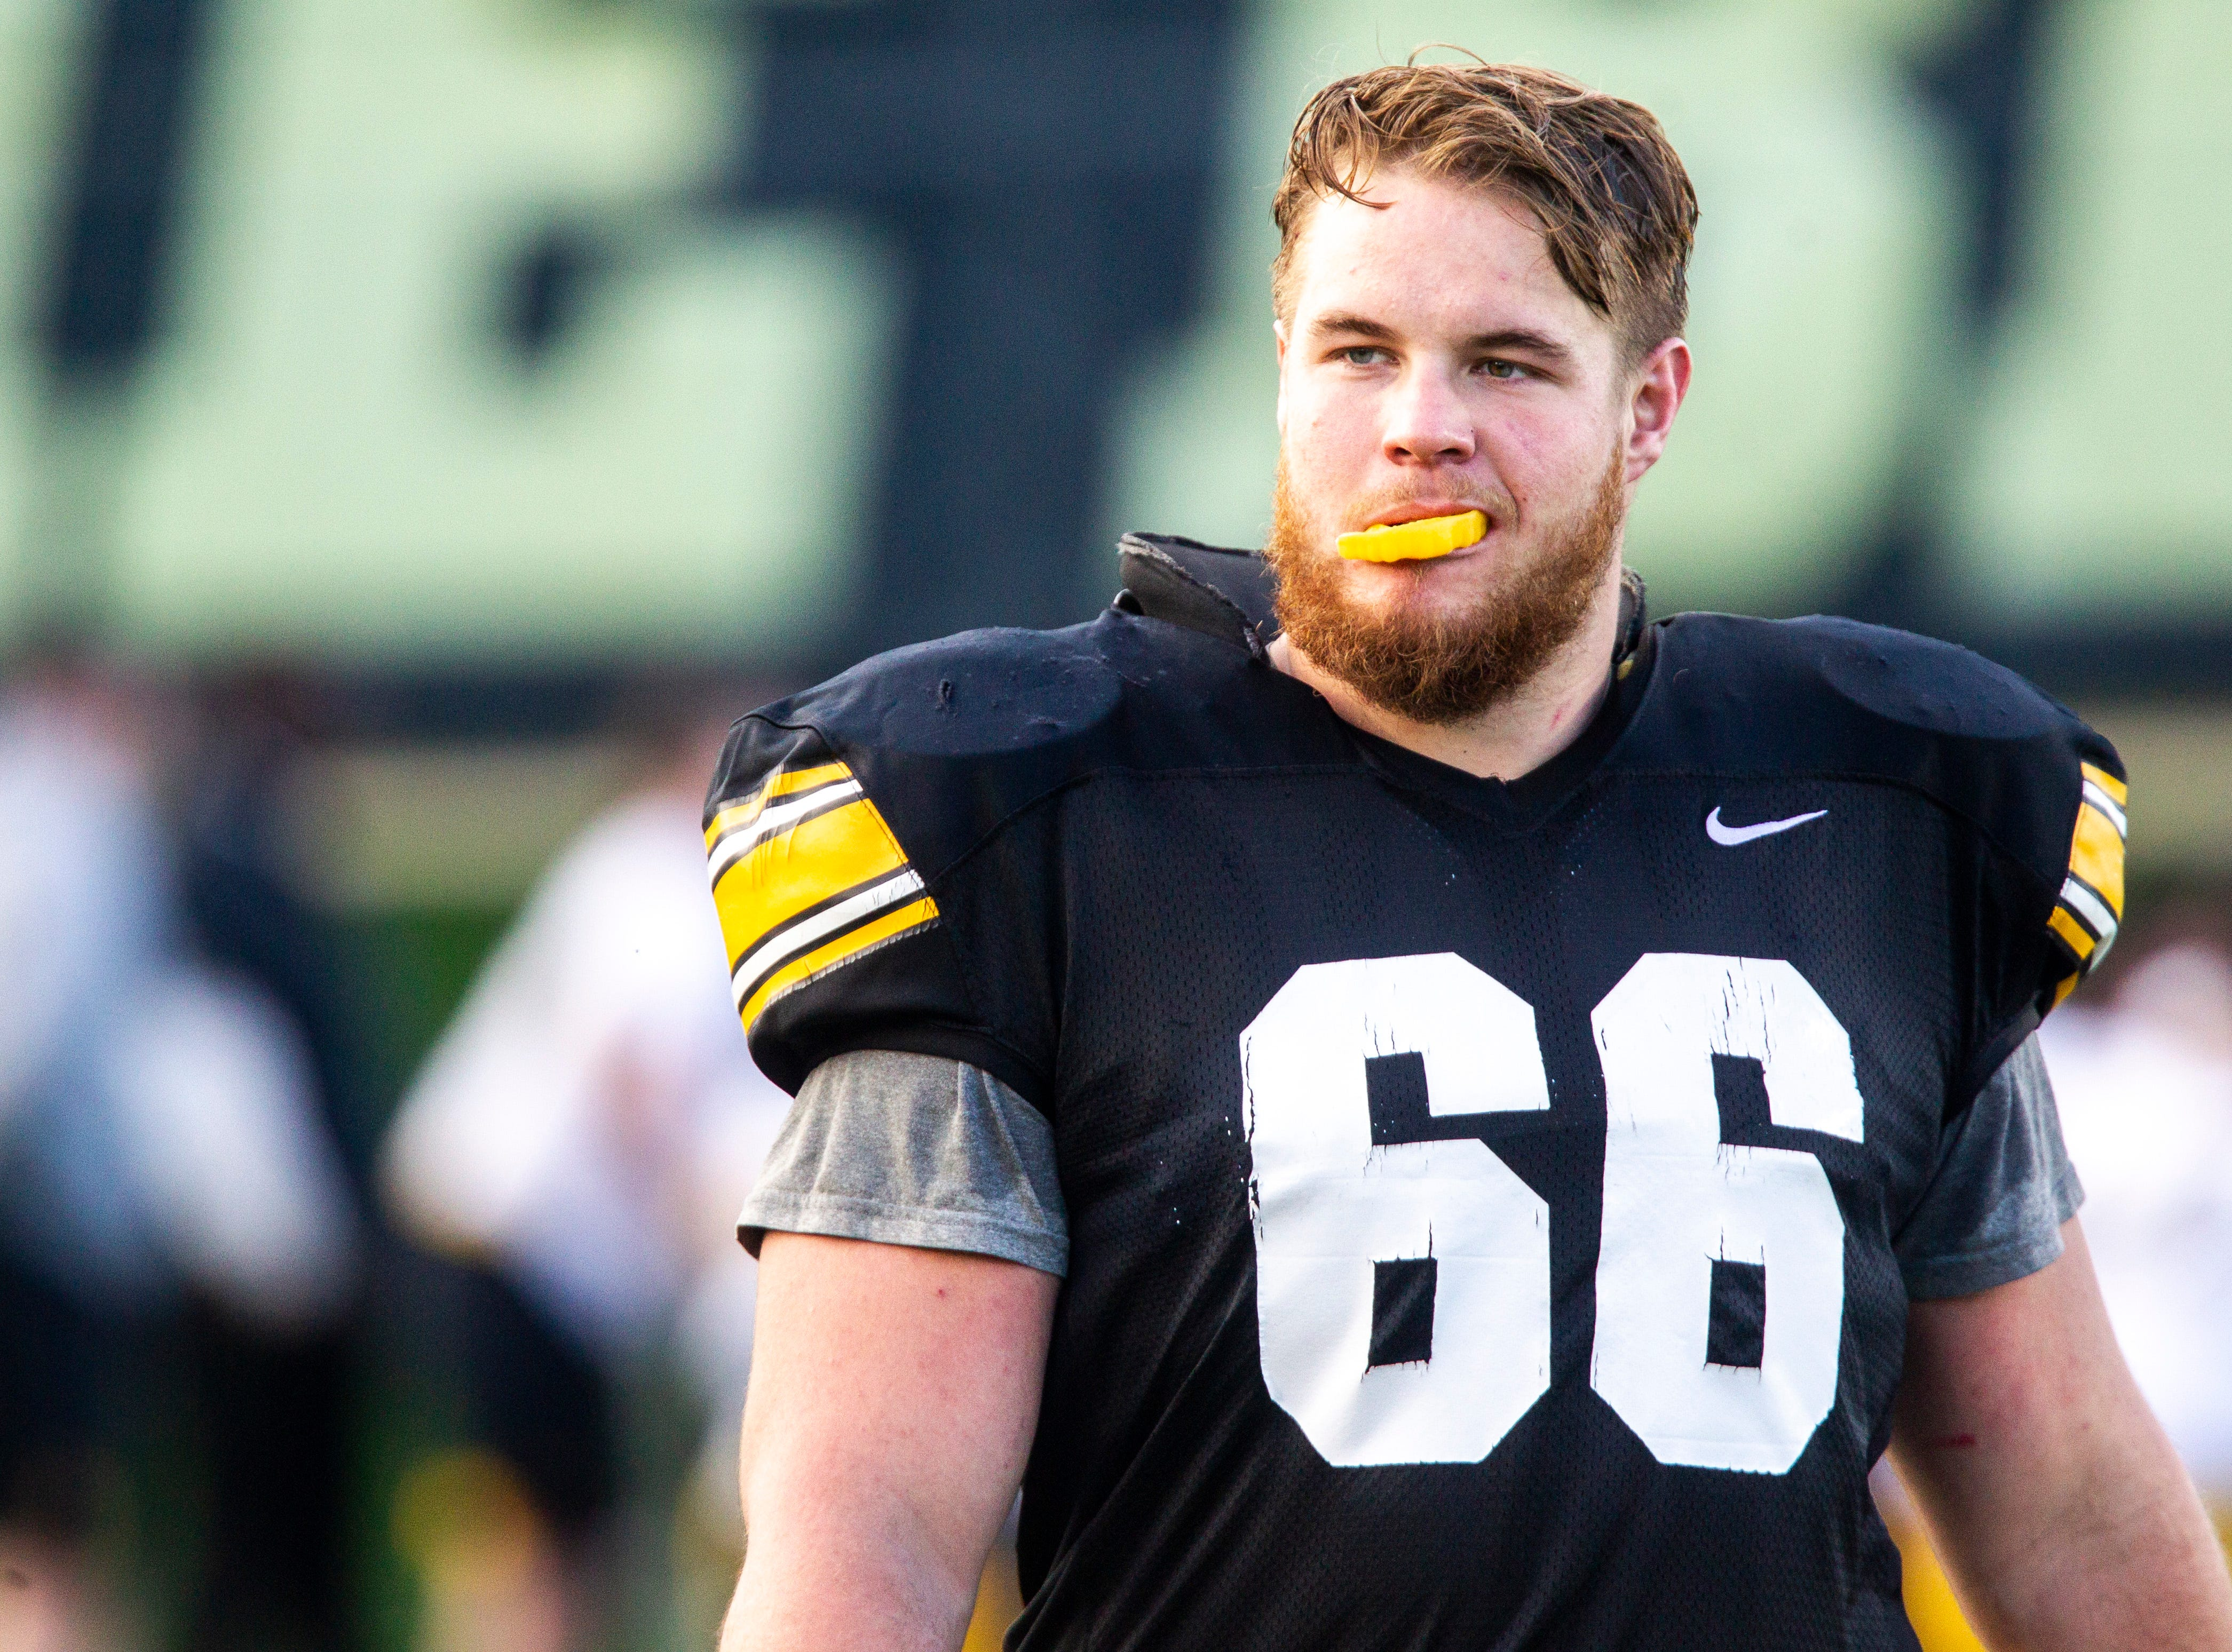 Iowa offensive lineman Levi Paulsen (66) is pictured during the final spring football practice, Friday, April 26, 2019, at the University of Iowa outdoor practice facility in Iowa City, Iowa.